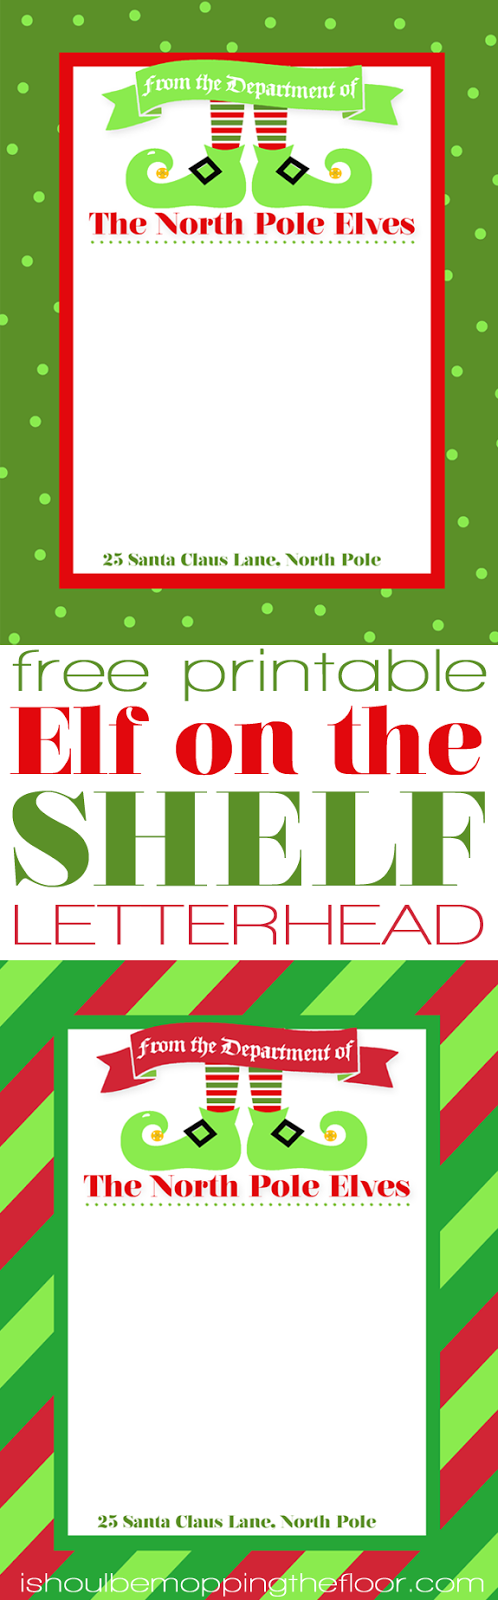 Free Printable Elf Letterhead Elf letters, Elf, Elf on